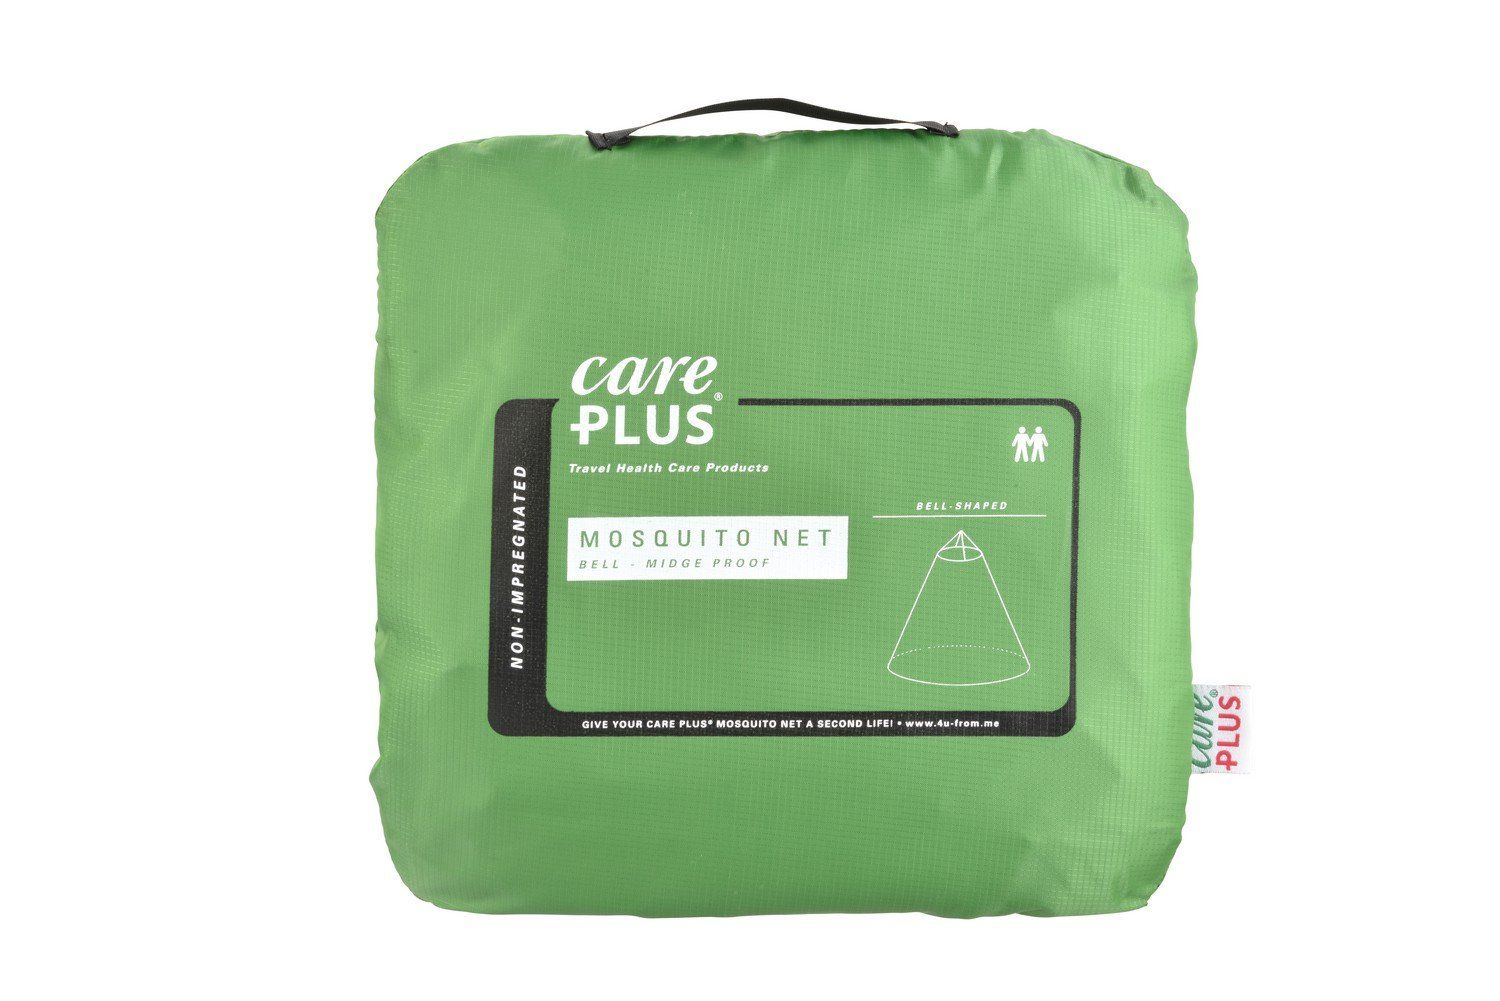 Care Plus Midge-Proof Bell-Shaped Unimpregnated Mosquito Net for 2/People